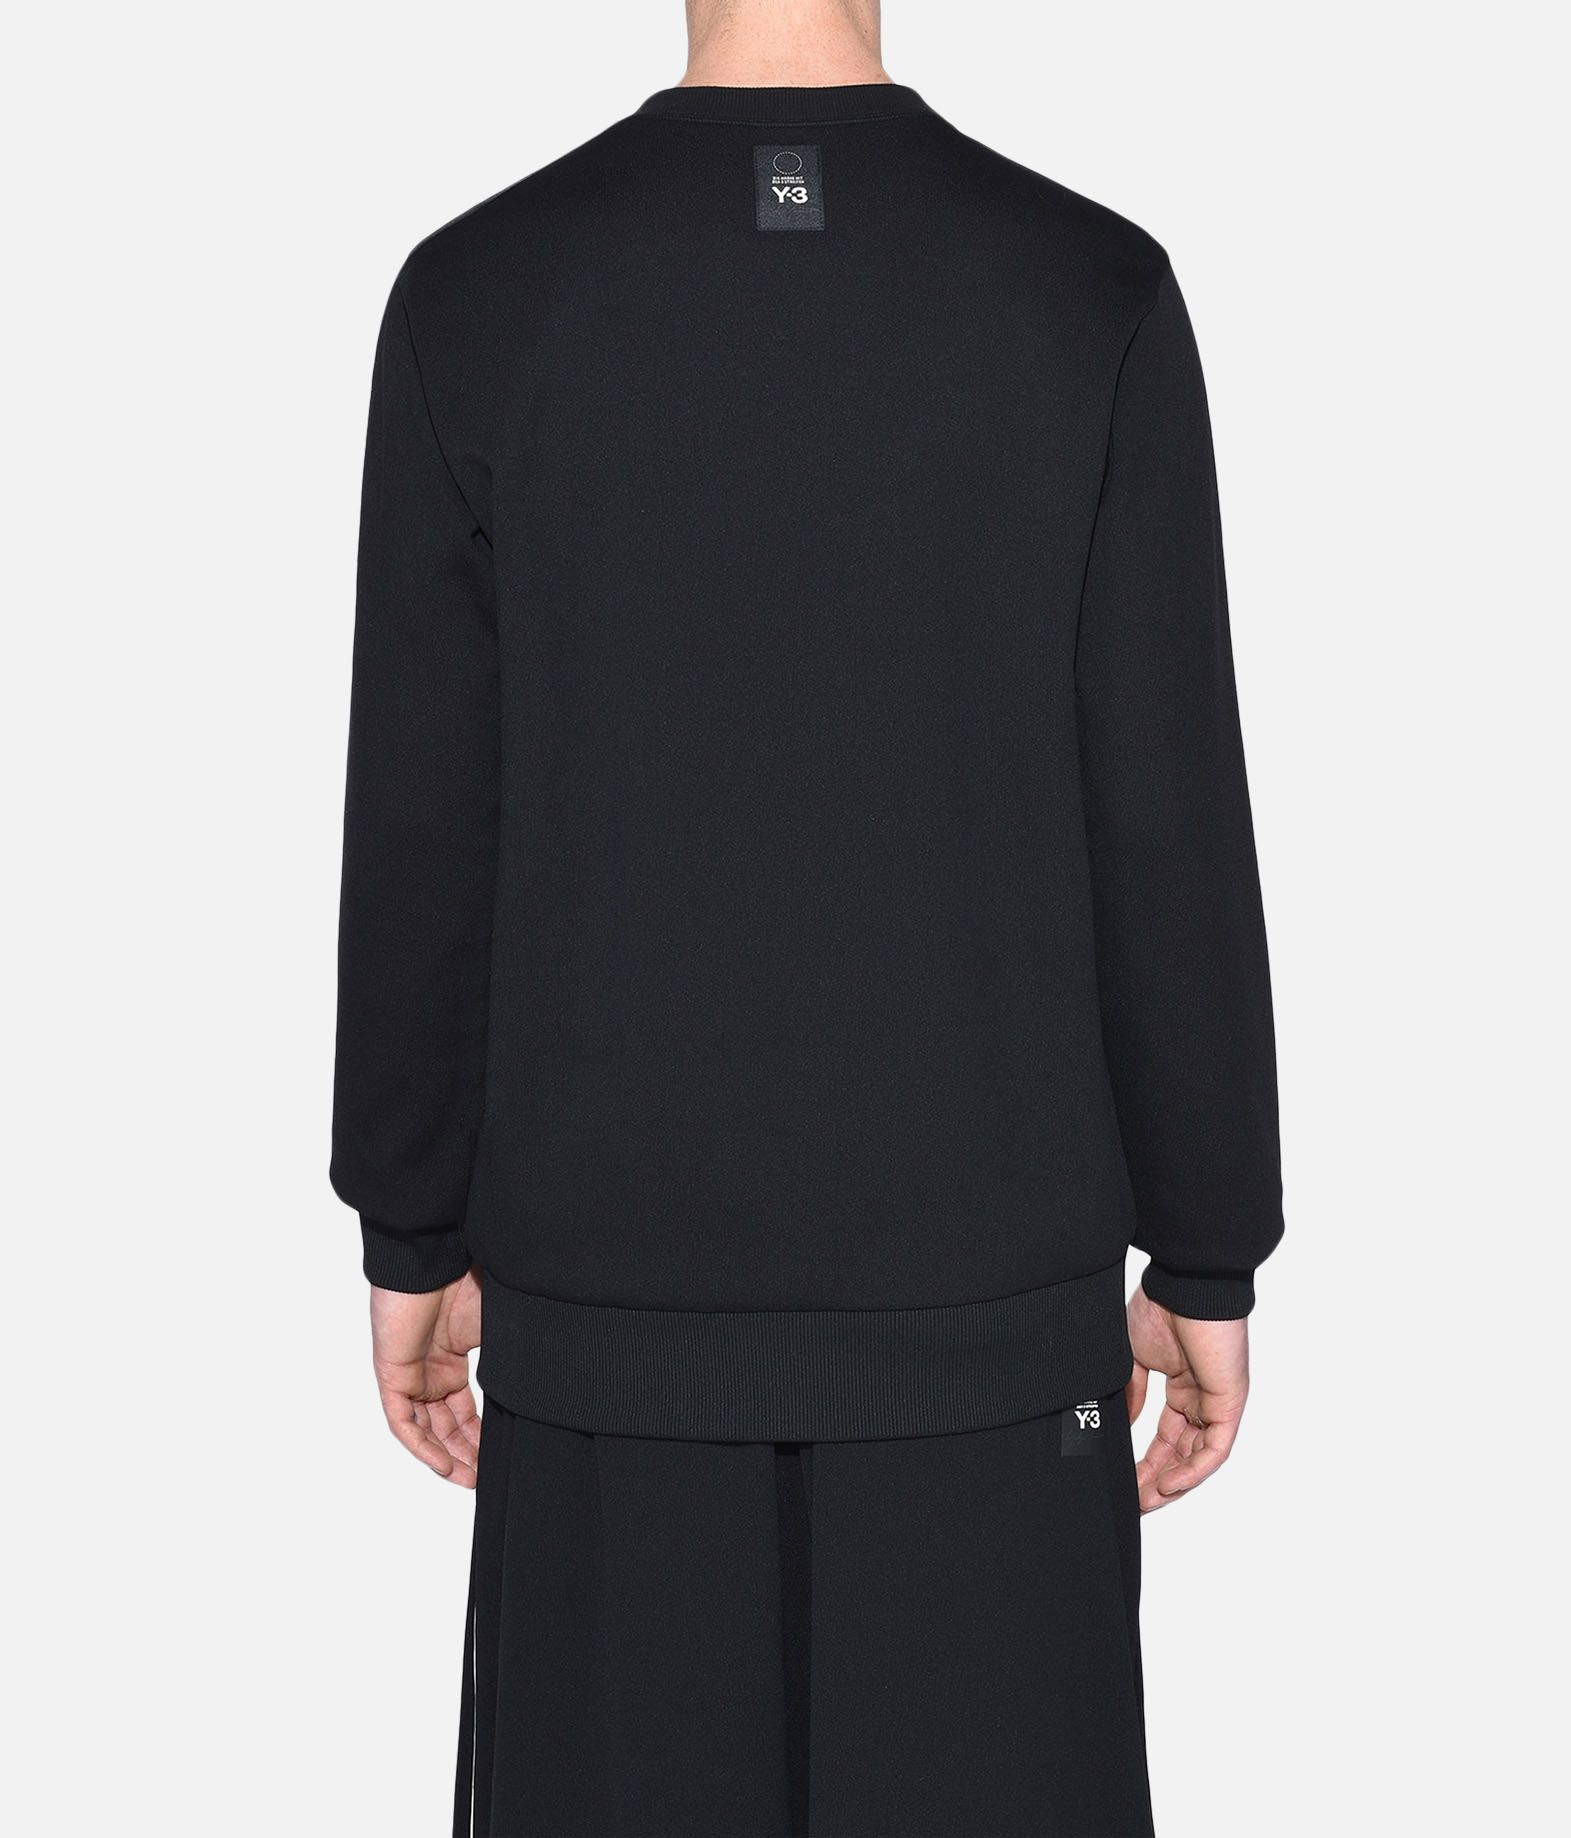 Y-3 Y-3 Patchwork Sweater Sweatshirt Man d